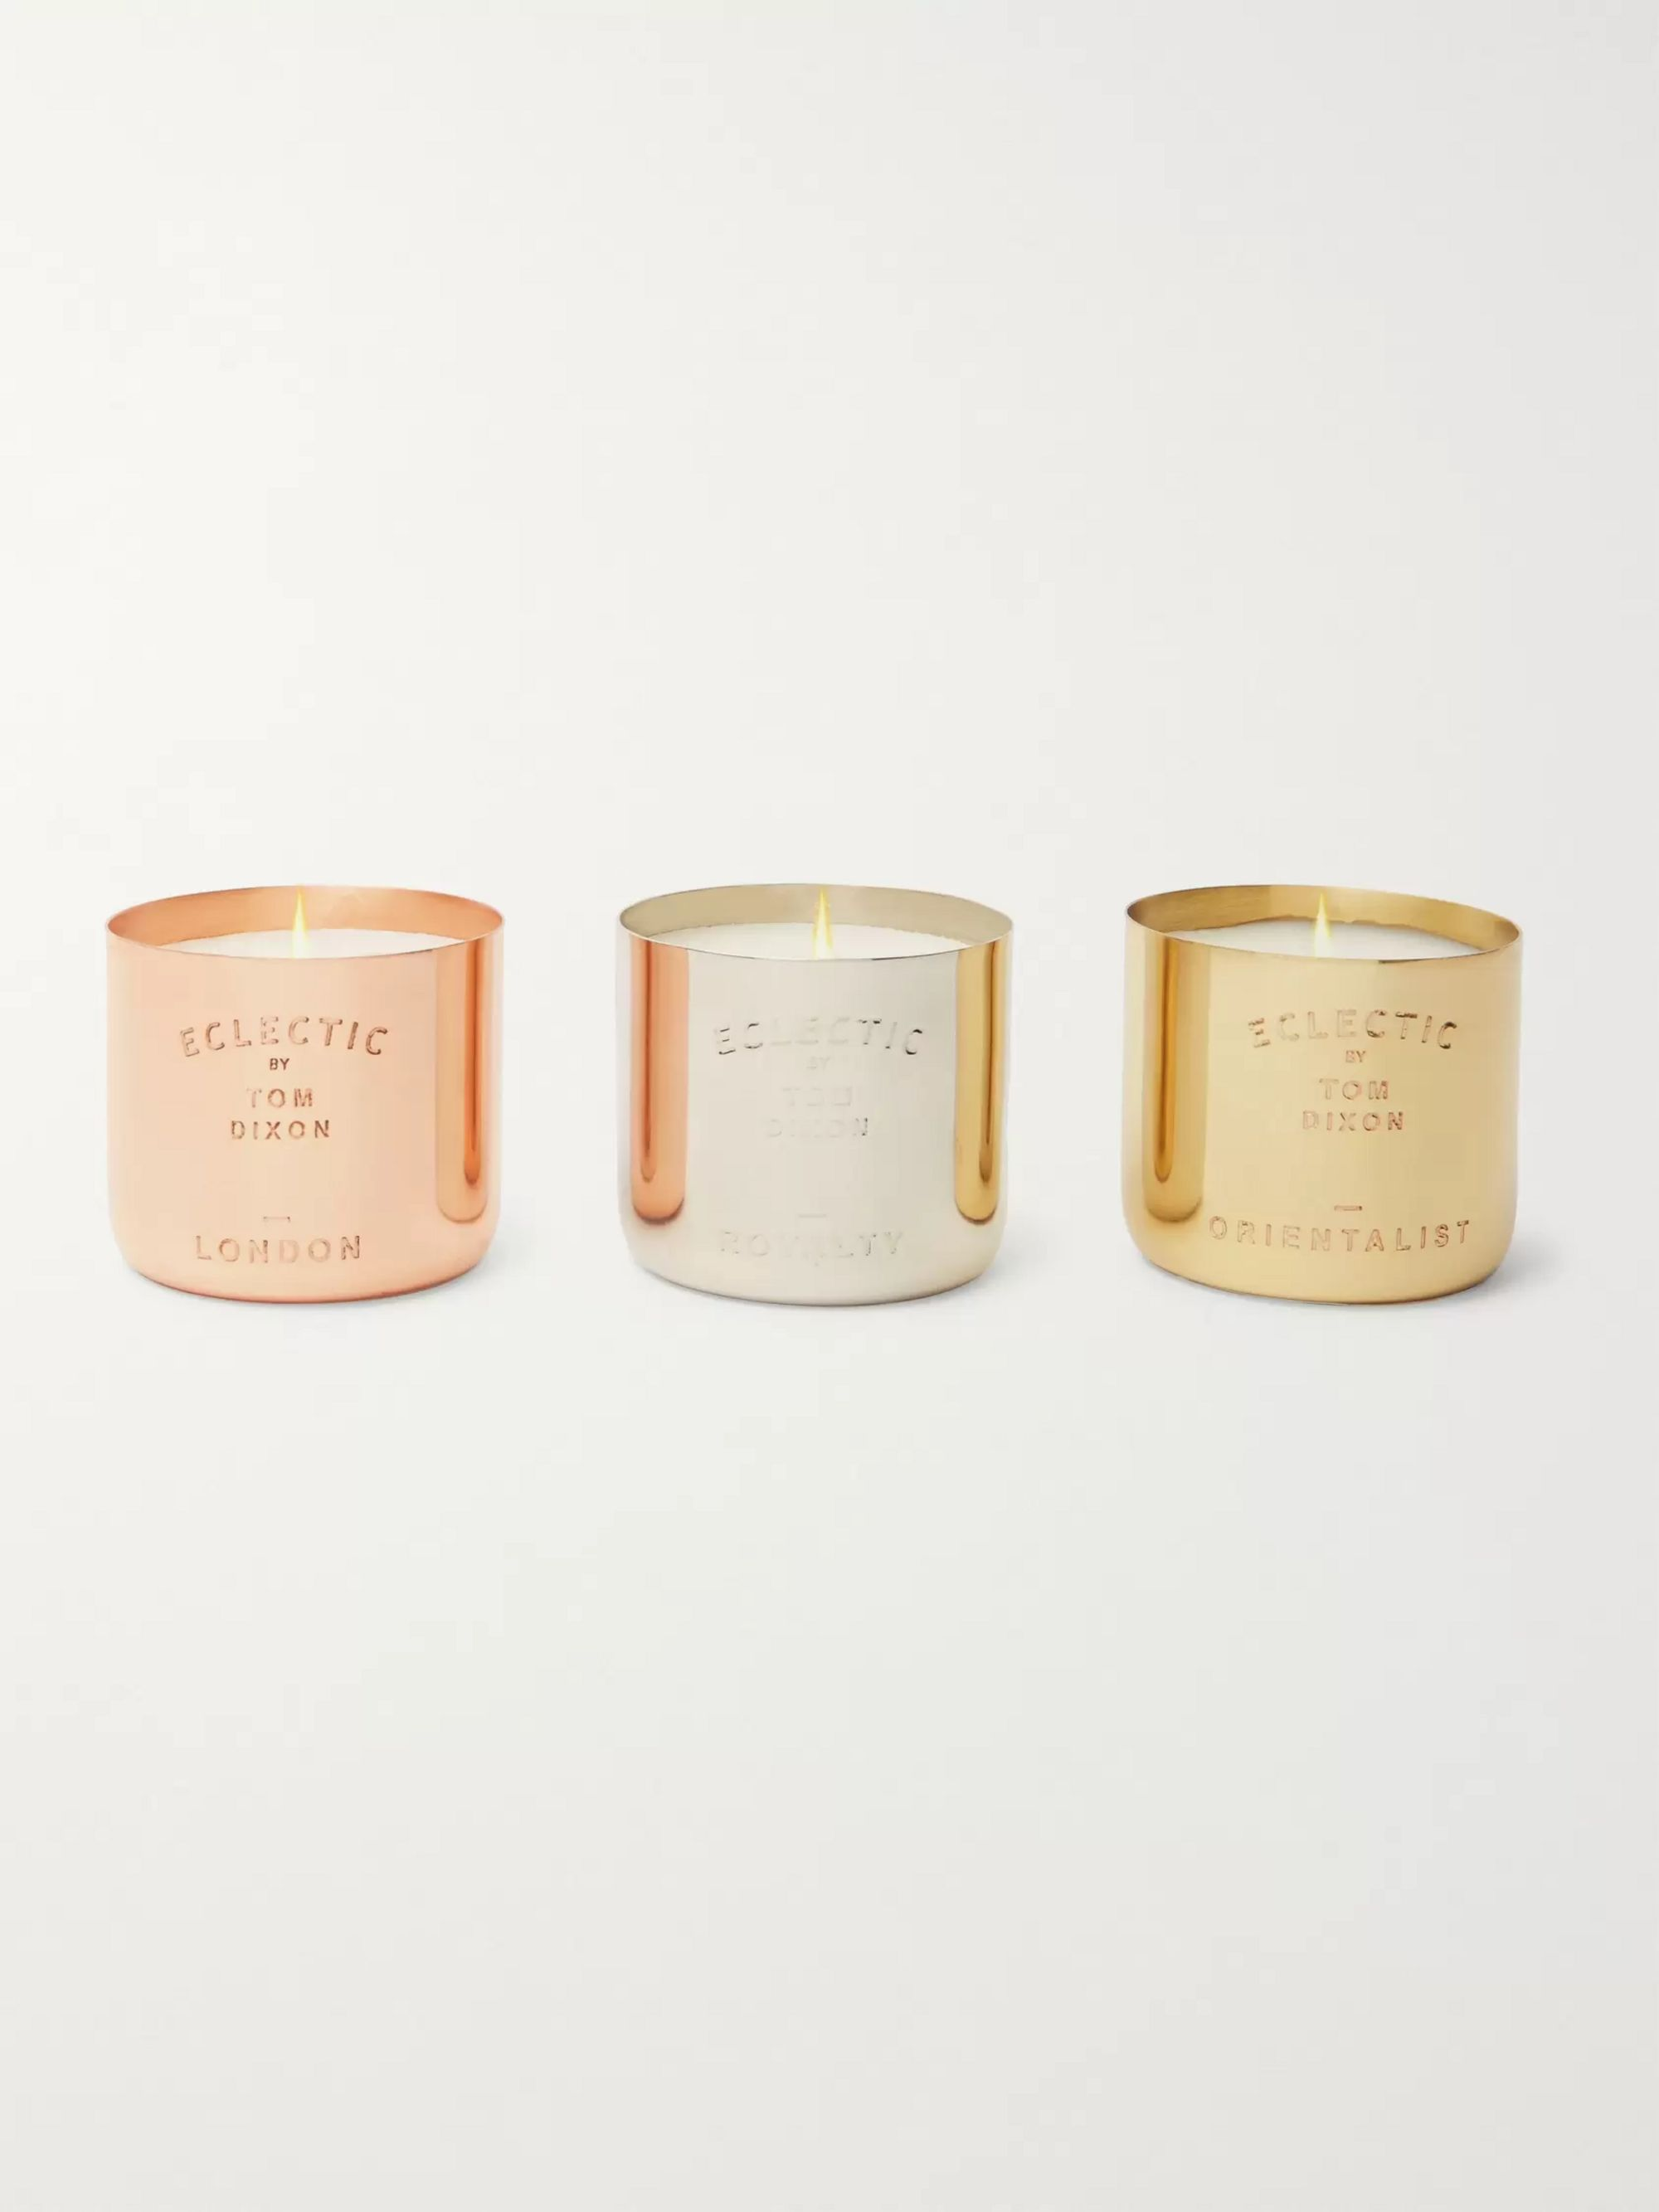 Tom Dixon Eclectic Scented Candle Set, 3 x 120g